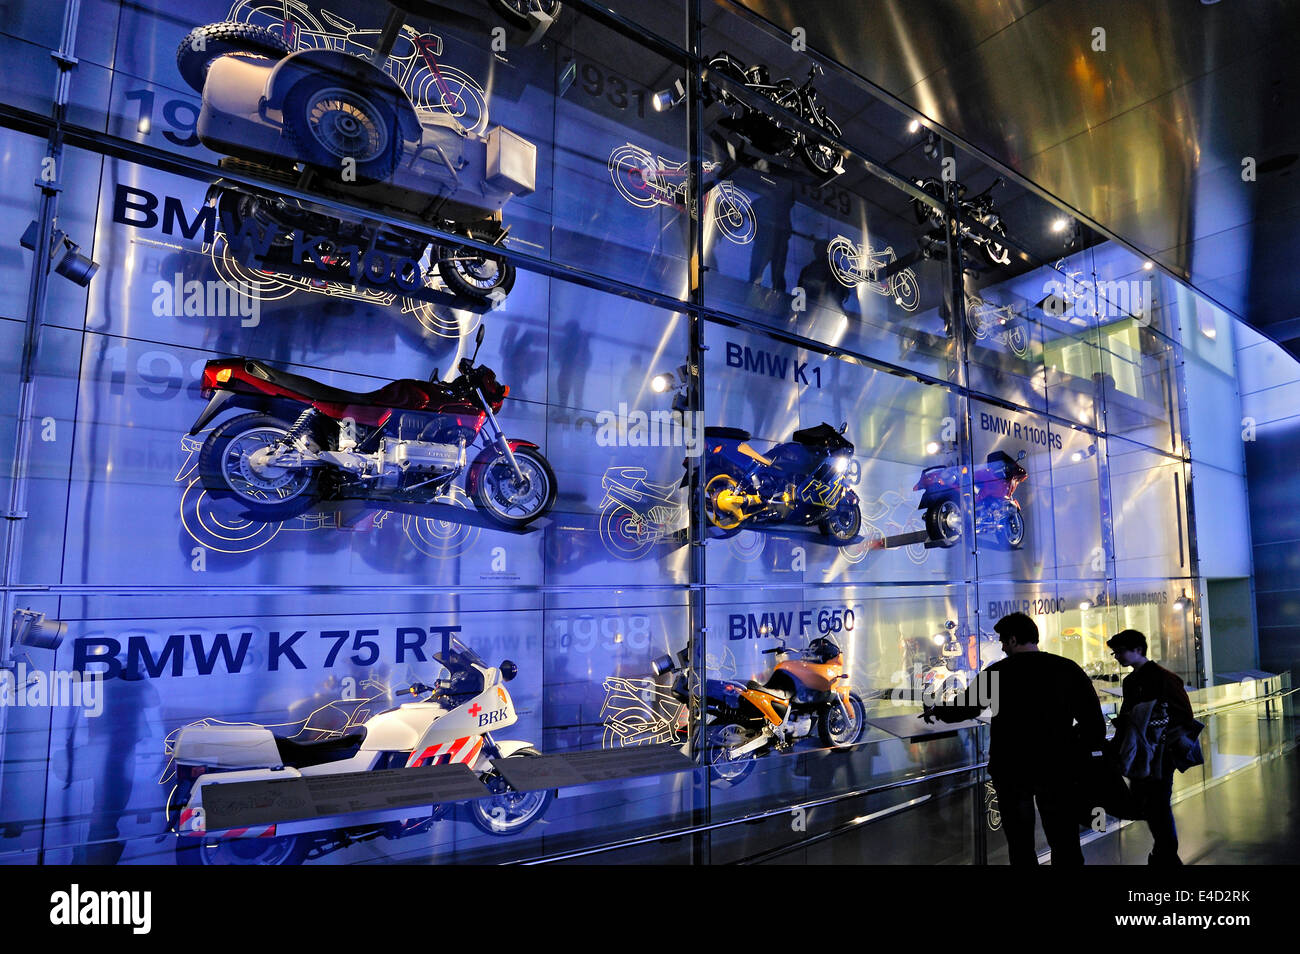 BMW motorcycles behind glass wall, BMW Museum, Munich, Upper Bavaria, Bavaria, Germany - Stock Image